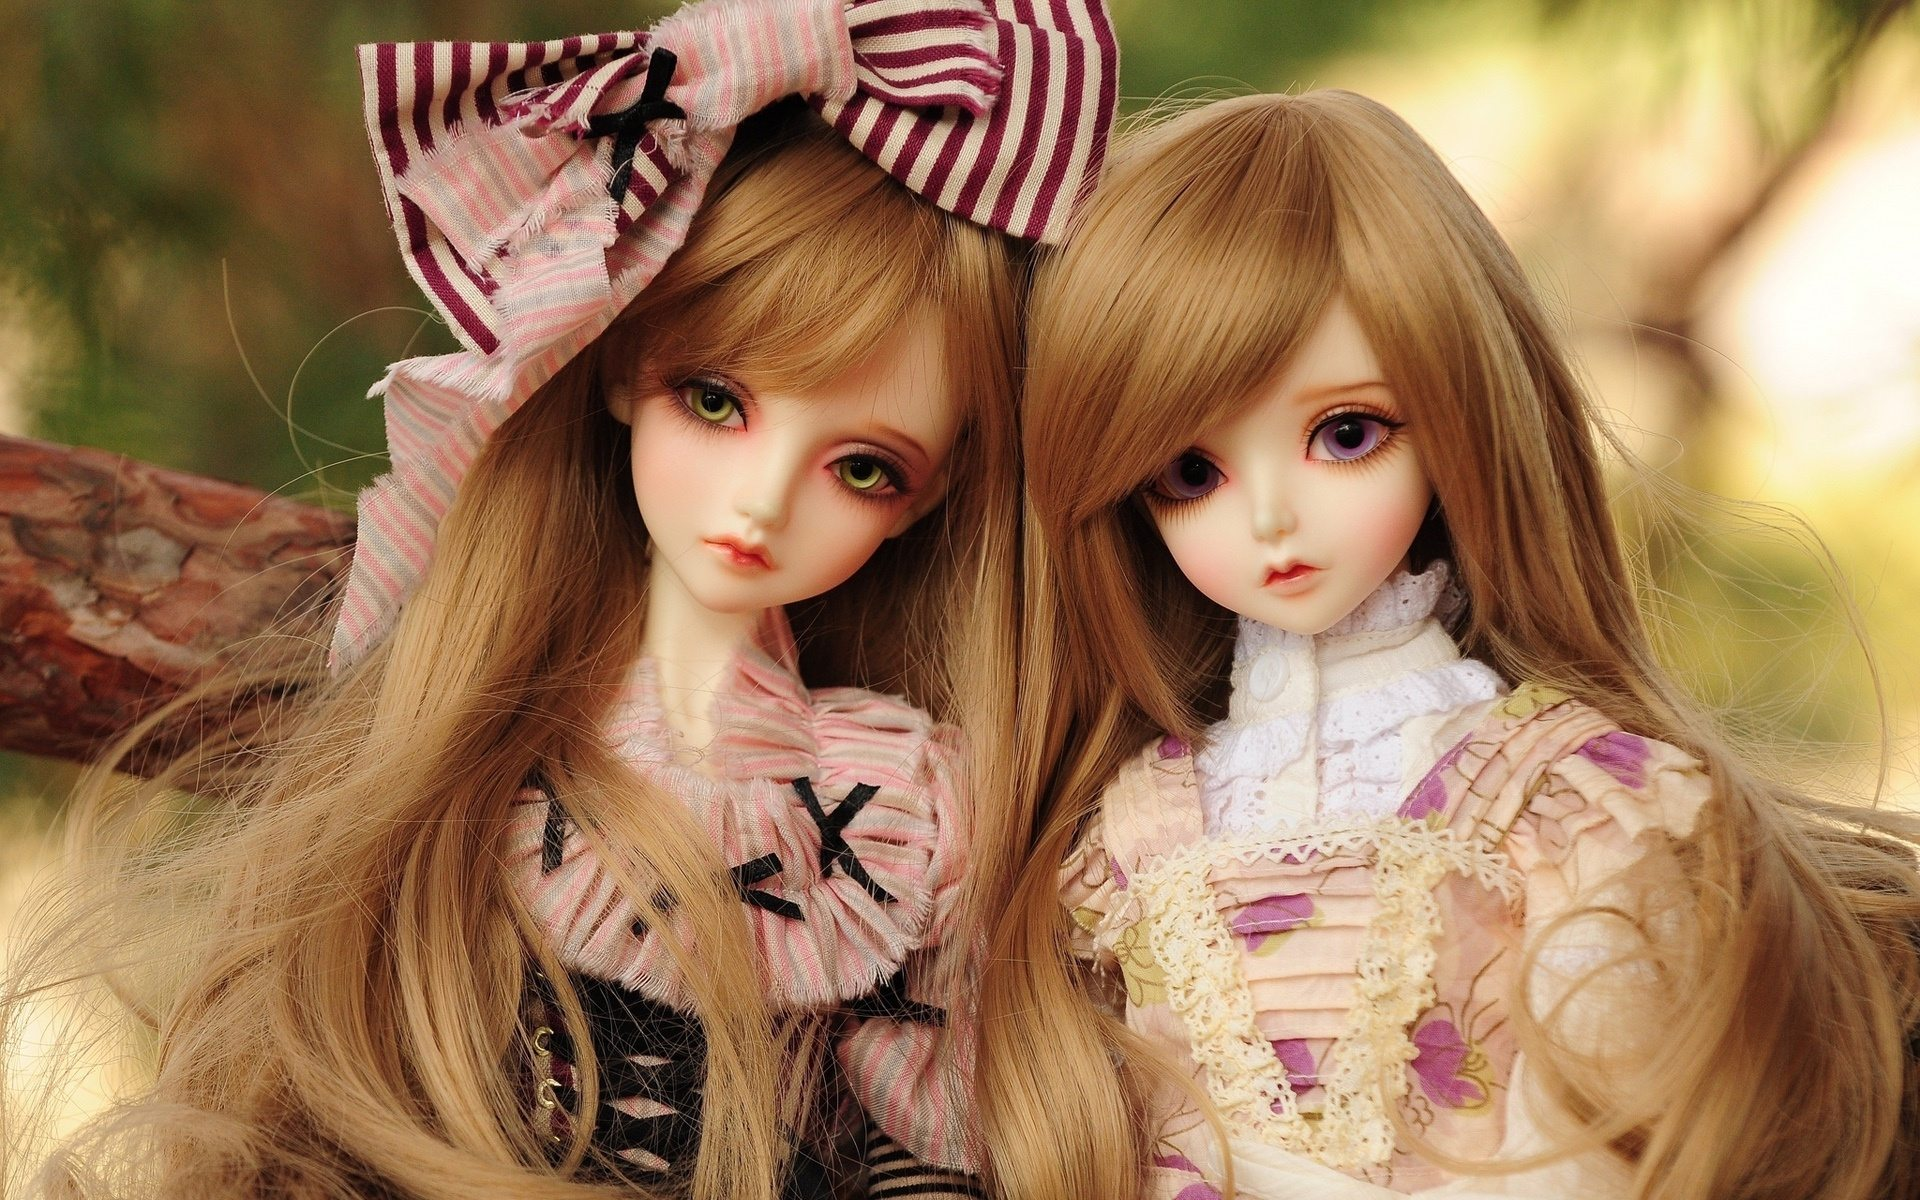 doll-wonderful-hd-wallpaper-14294429153